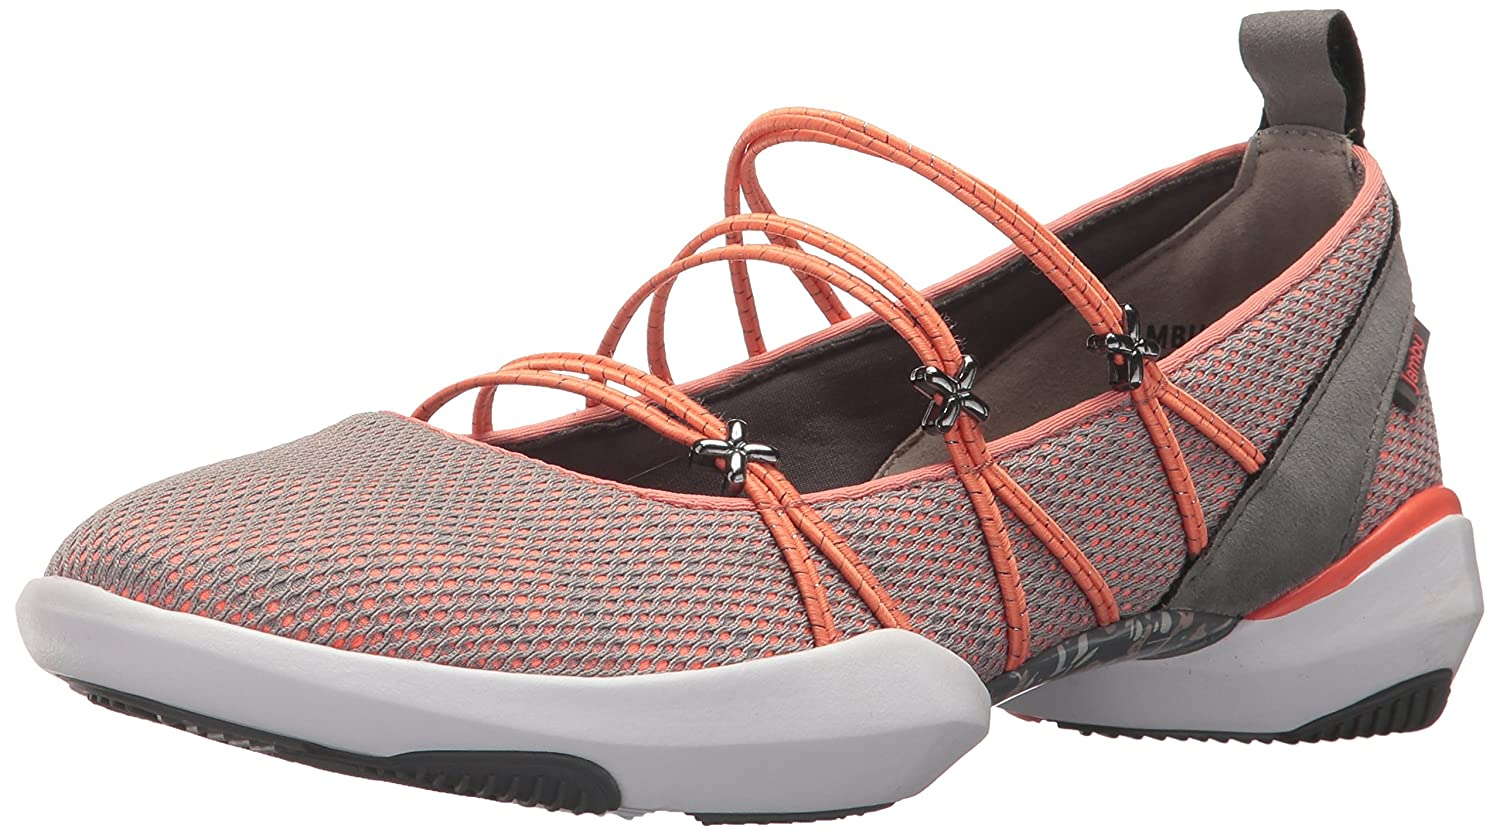 Jambu Women's Cheyenne Vegan Ballet Flat B074KQLTH2 6 B(M) US|Orange/Grey